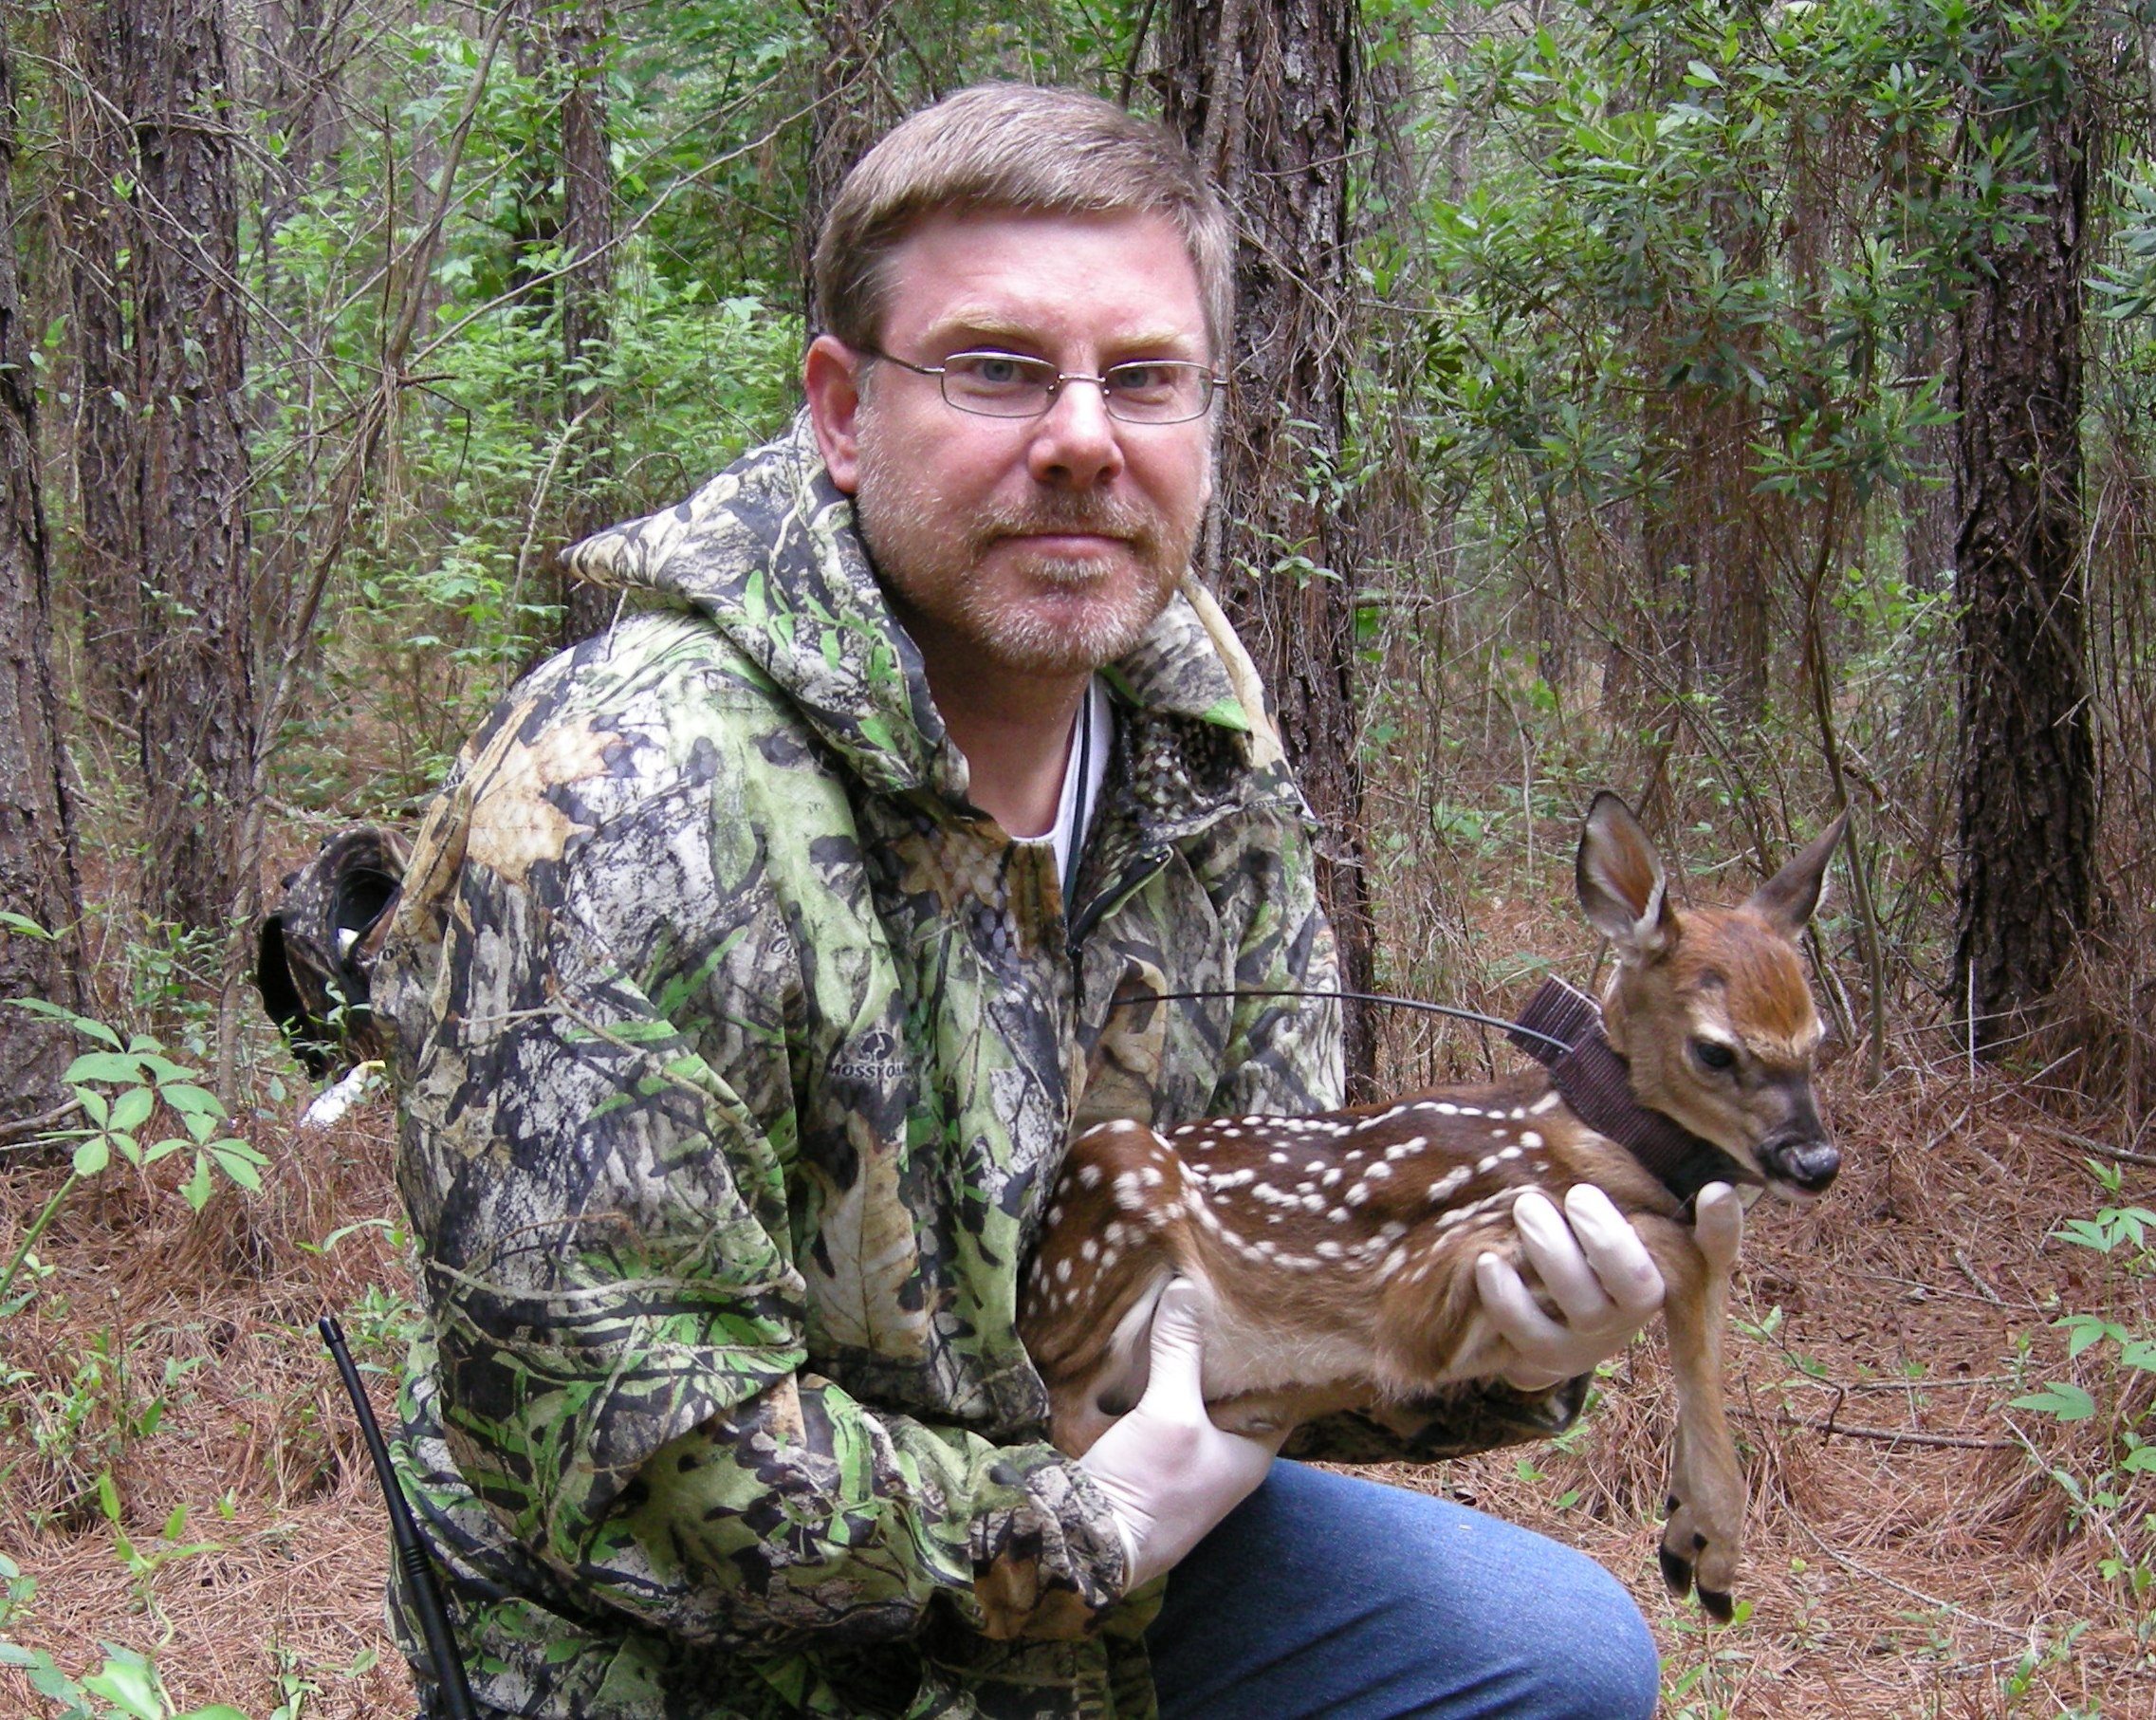 Study Concludes Coyotes Help Manage Deer Population in Southeast